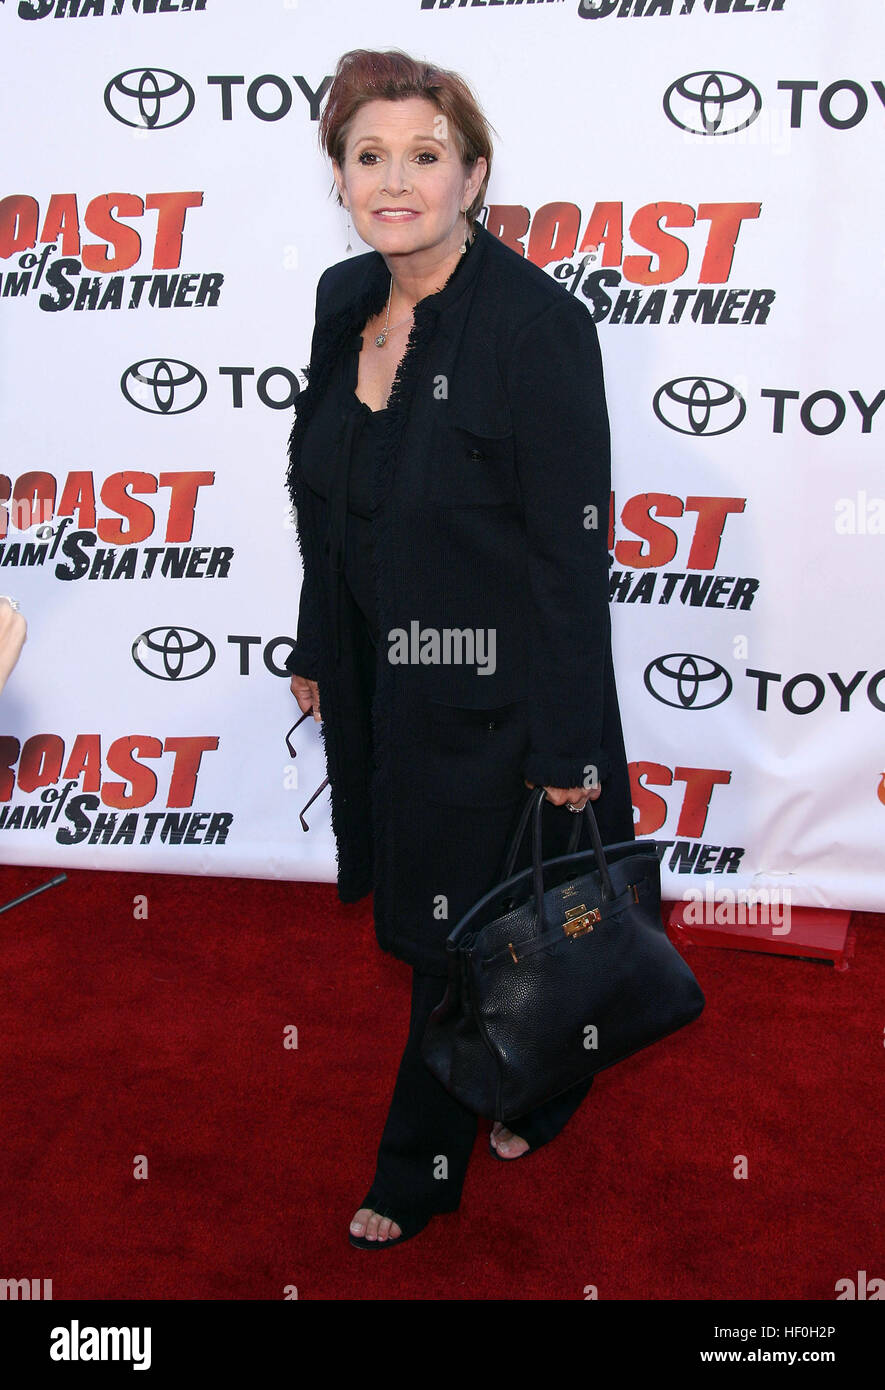 FILE PIC: Studio City, California, USA. 13th Aug, 2006. 27 December 2016 - Carrie Fisher, the iconic actress who - Stock Image